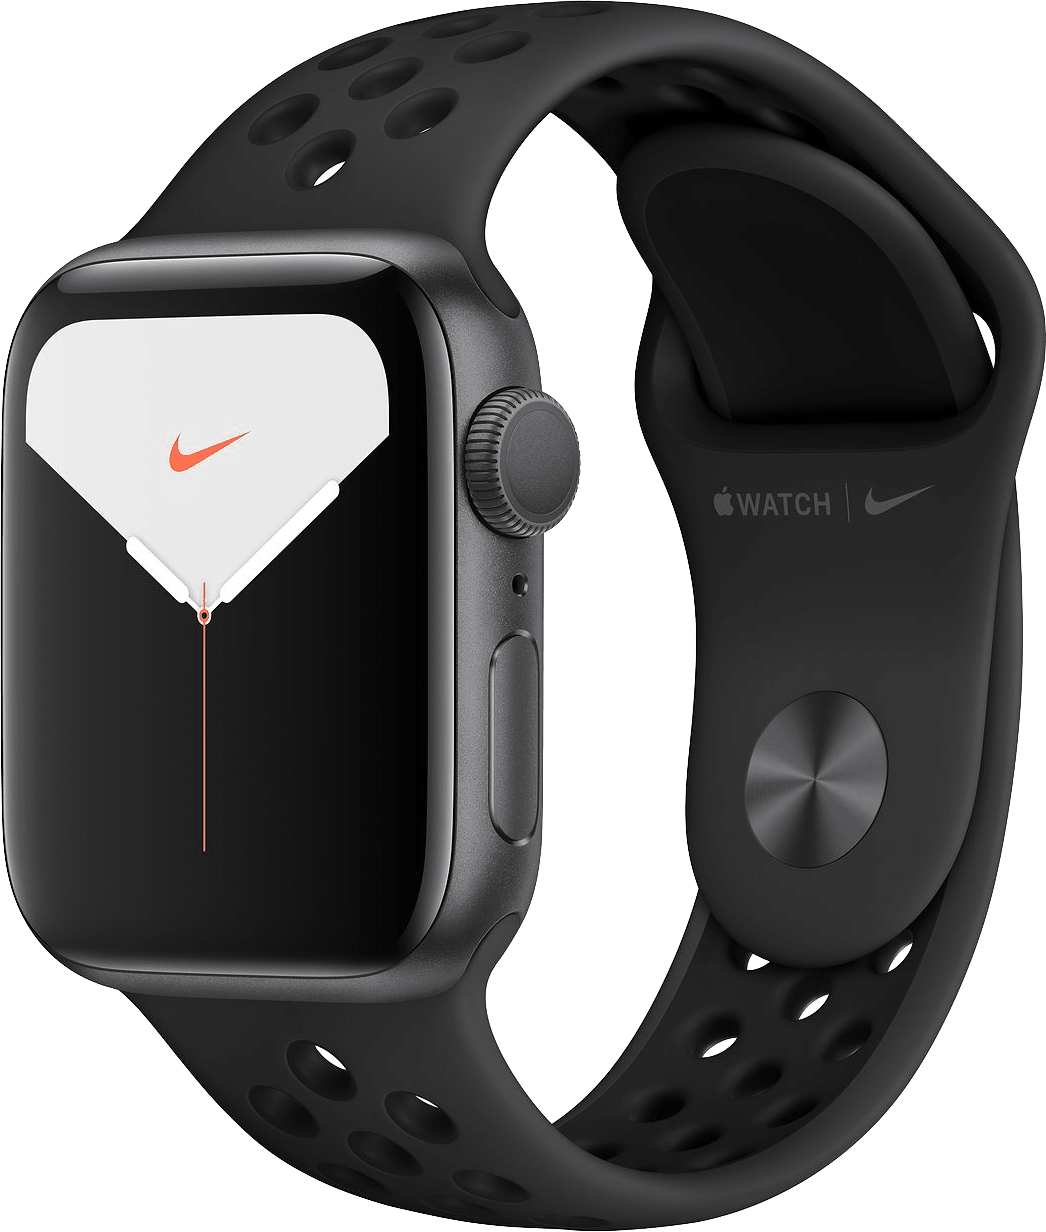 Anthracite / Black Apple Watch Nike Series 5 GPS, 40mm.2